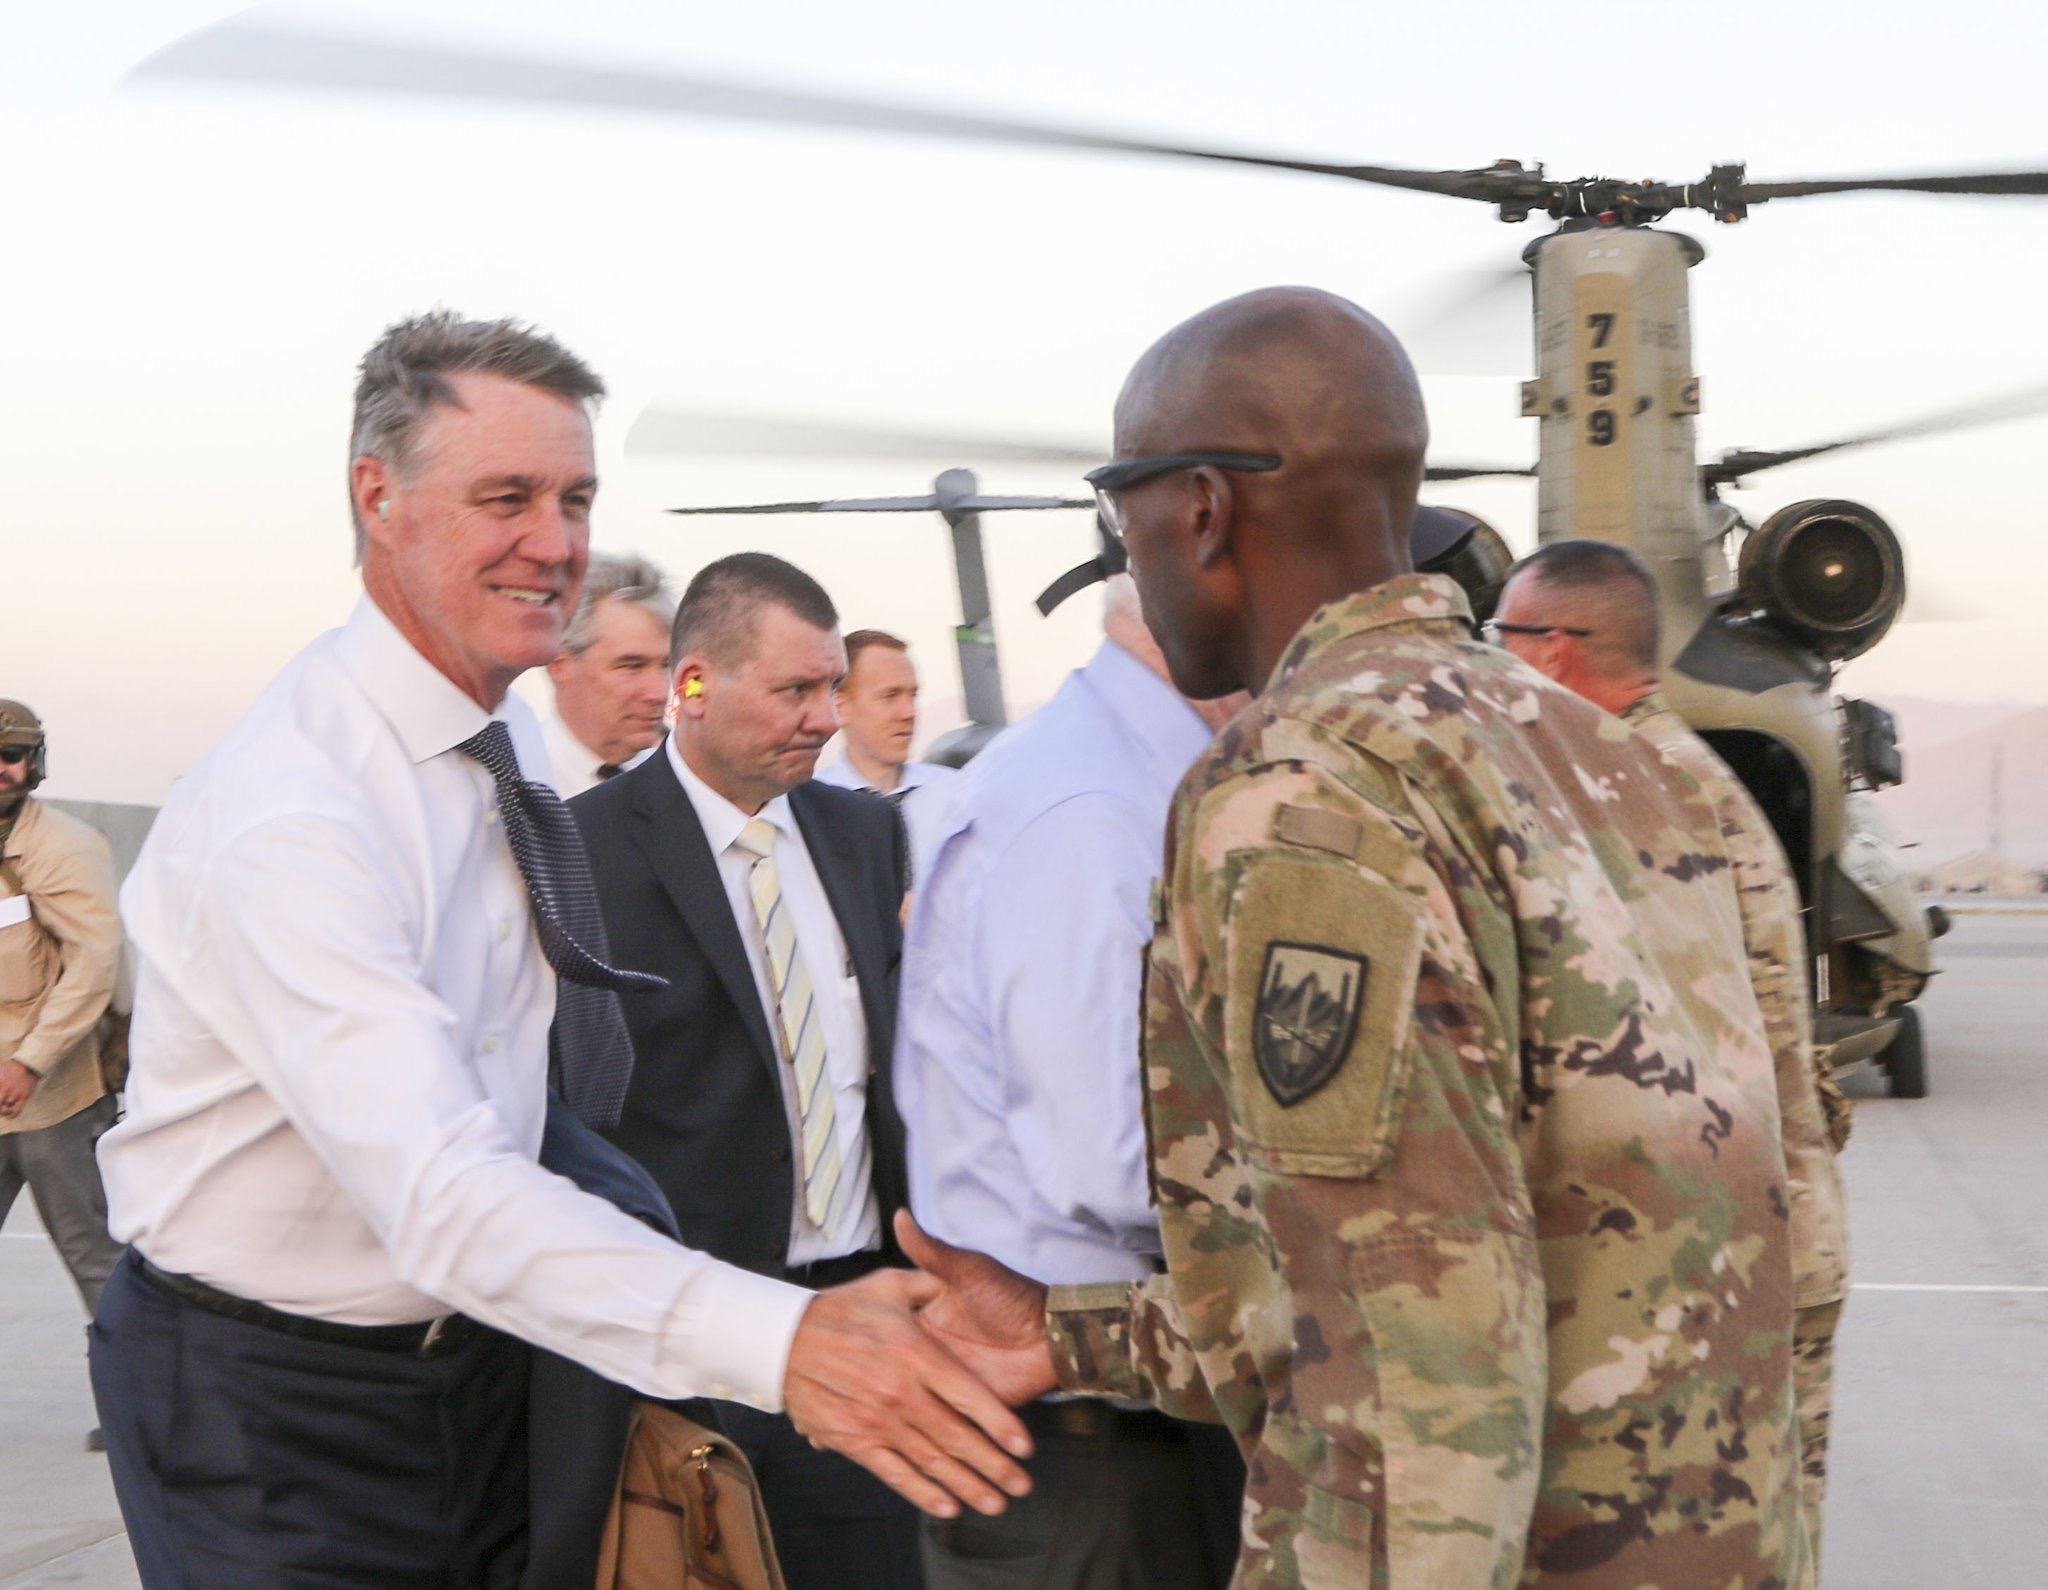 Sen. David Perdue, R-Ga., visited Afghanistan to meet with U.S. military leaders, diplomats, and Afghan political officials about the threat of terrorism and instability, and America's role in the region. (Sen. David Perdue)